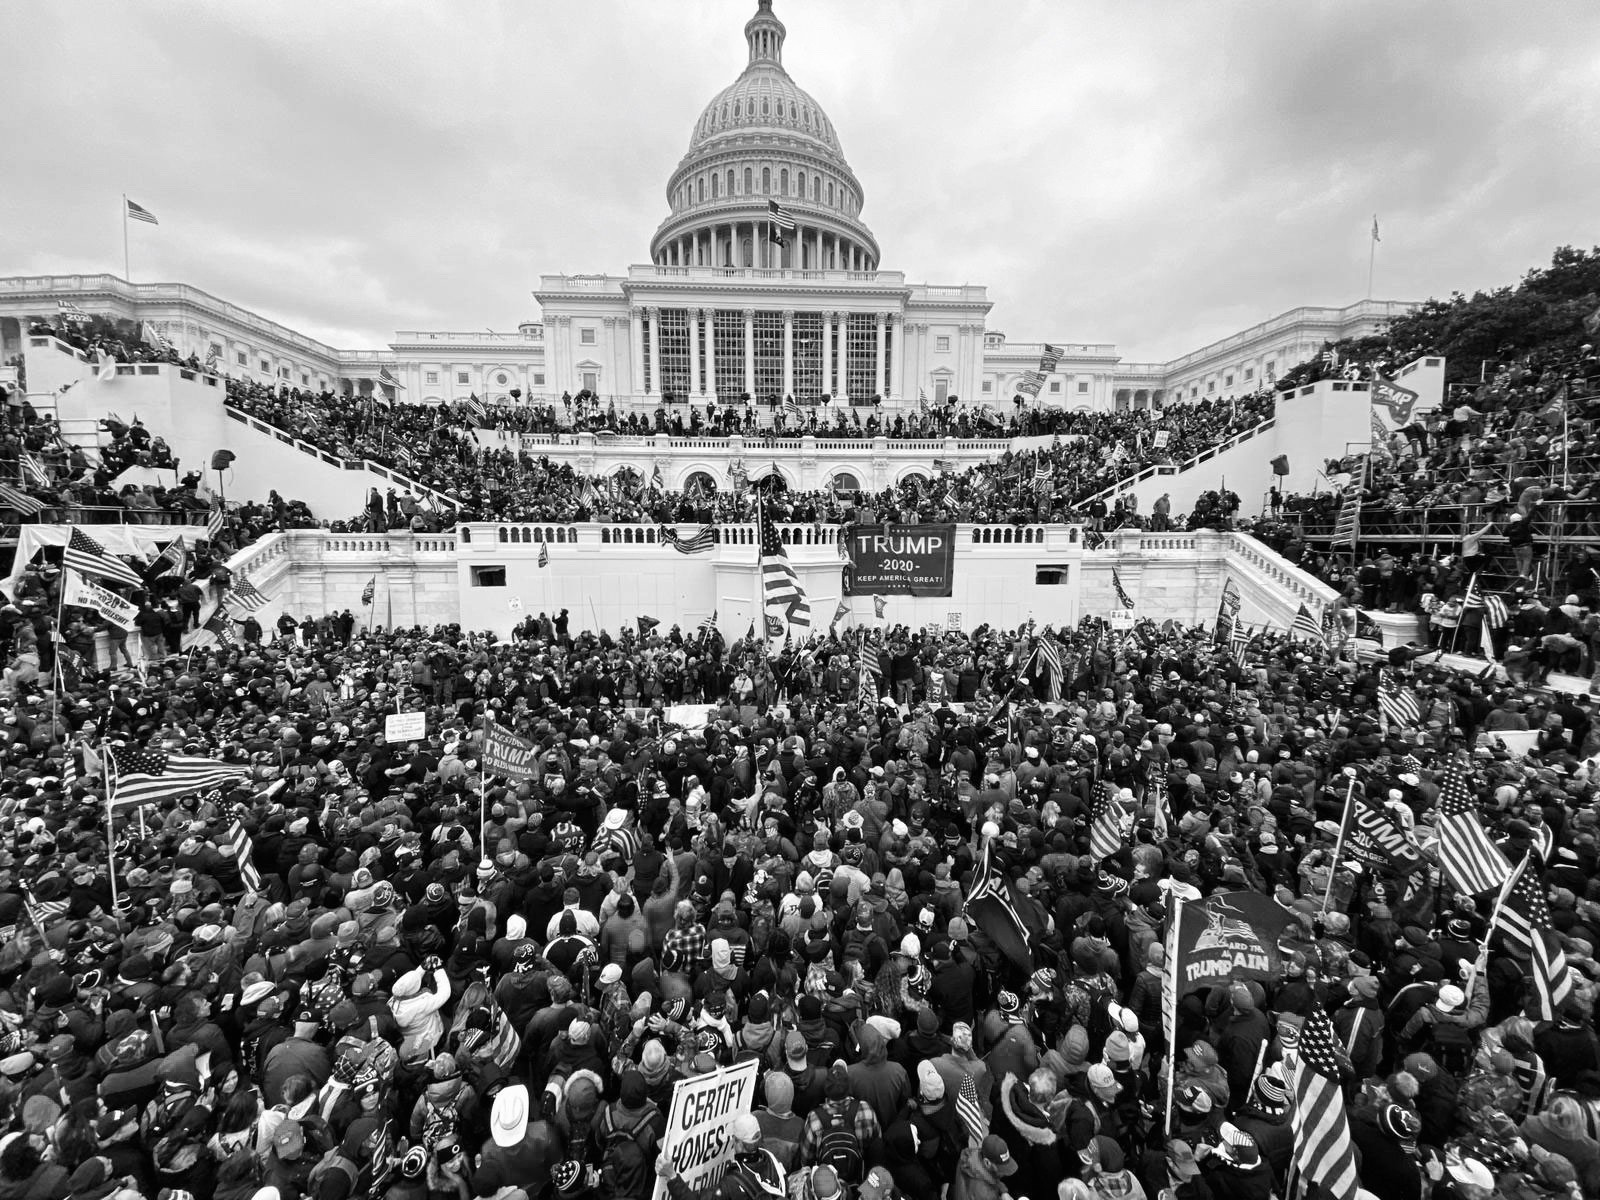 This photo shows the U.S. Capital as thousands of President Trump supporters, rioters, and insurrectionists gather to protest Biden's election. At this point in the protest, they have breached the barriers, and are climbing over the steps. Some have made their way into the building, via breaking down doors and windows.